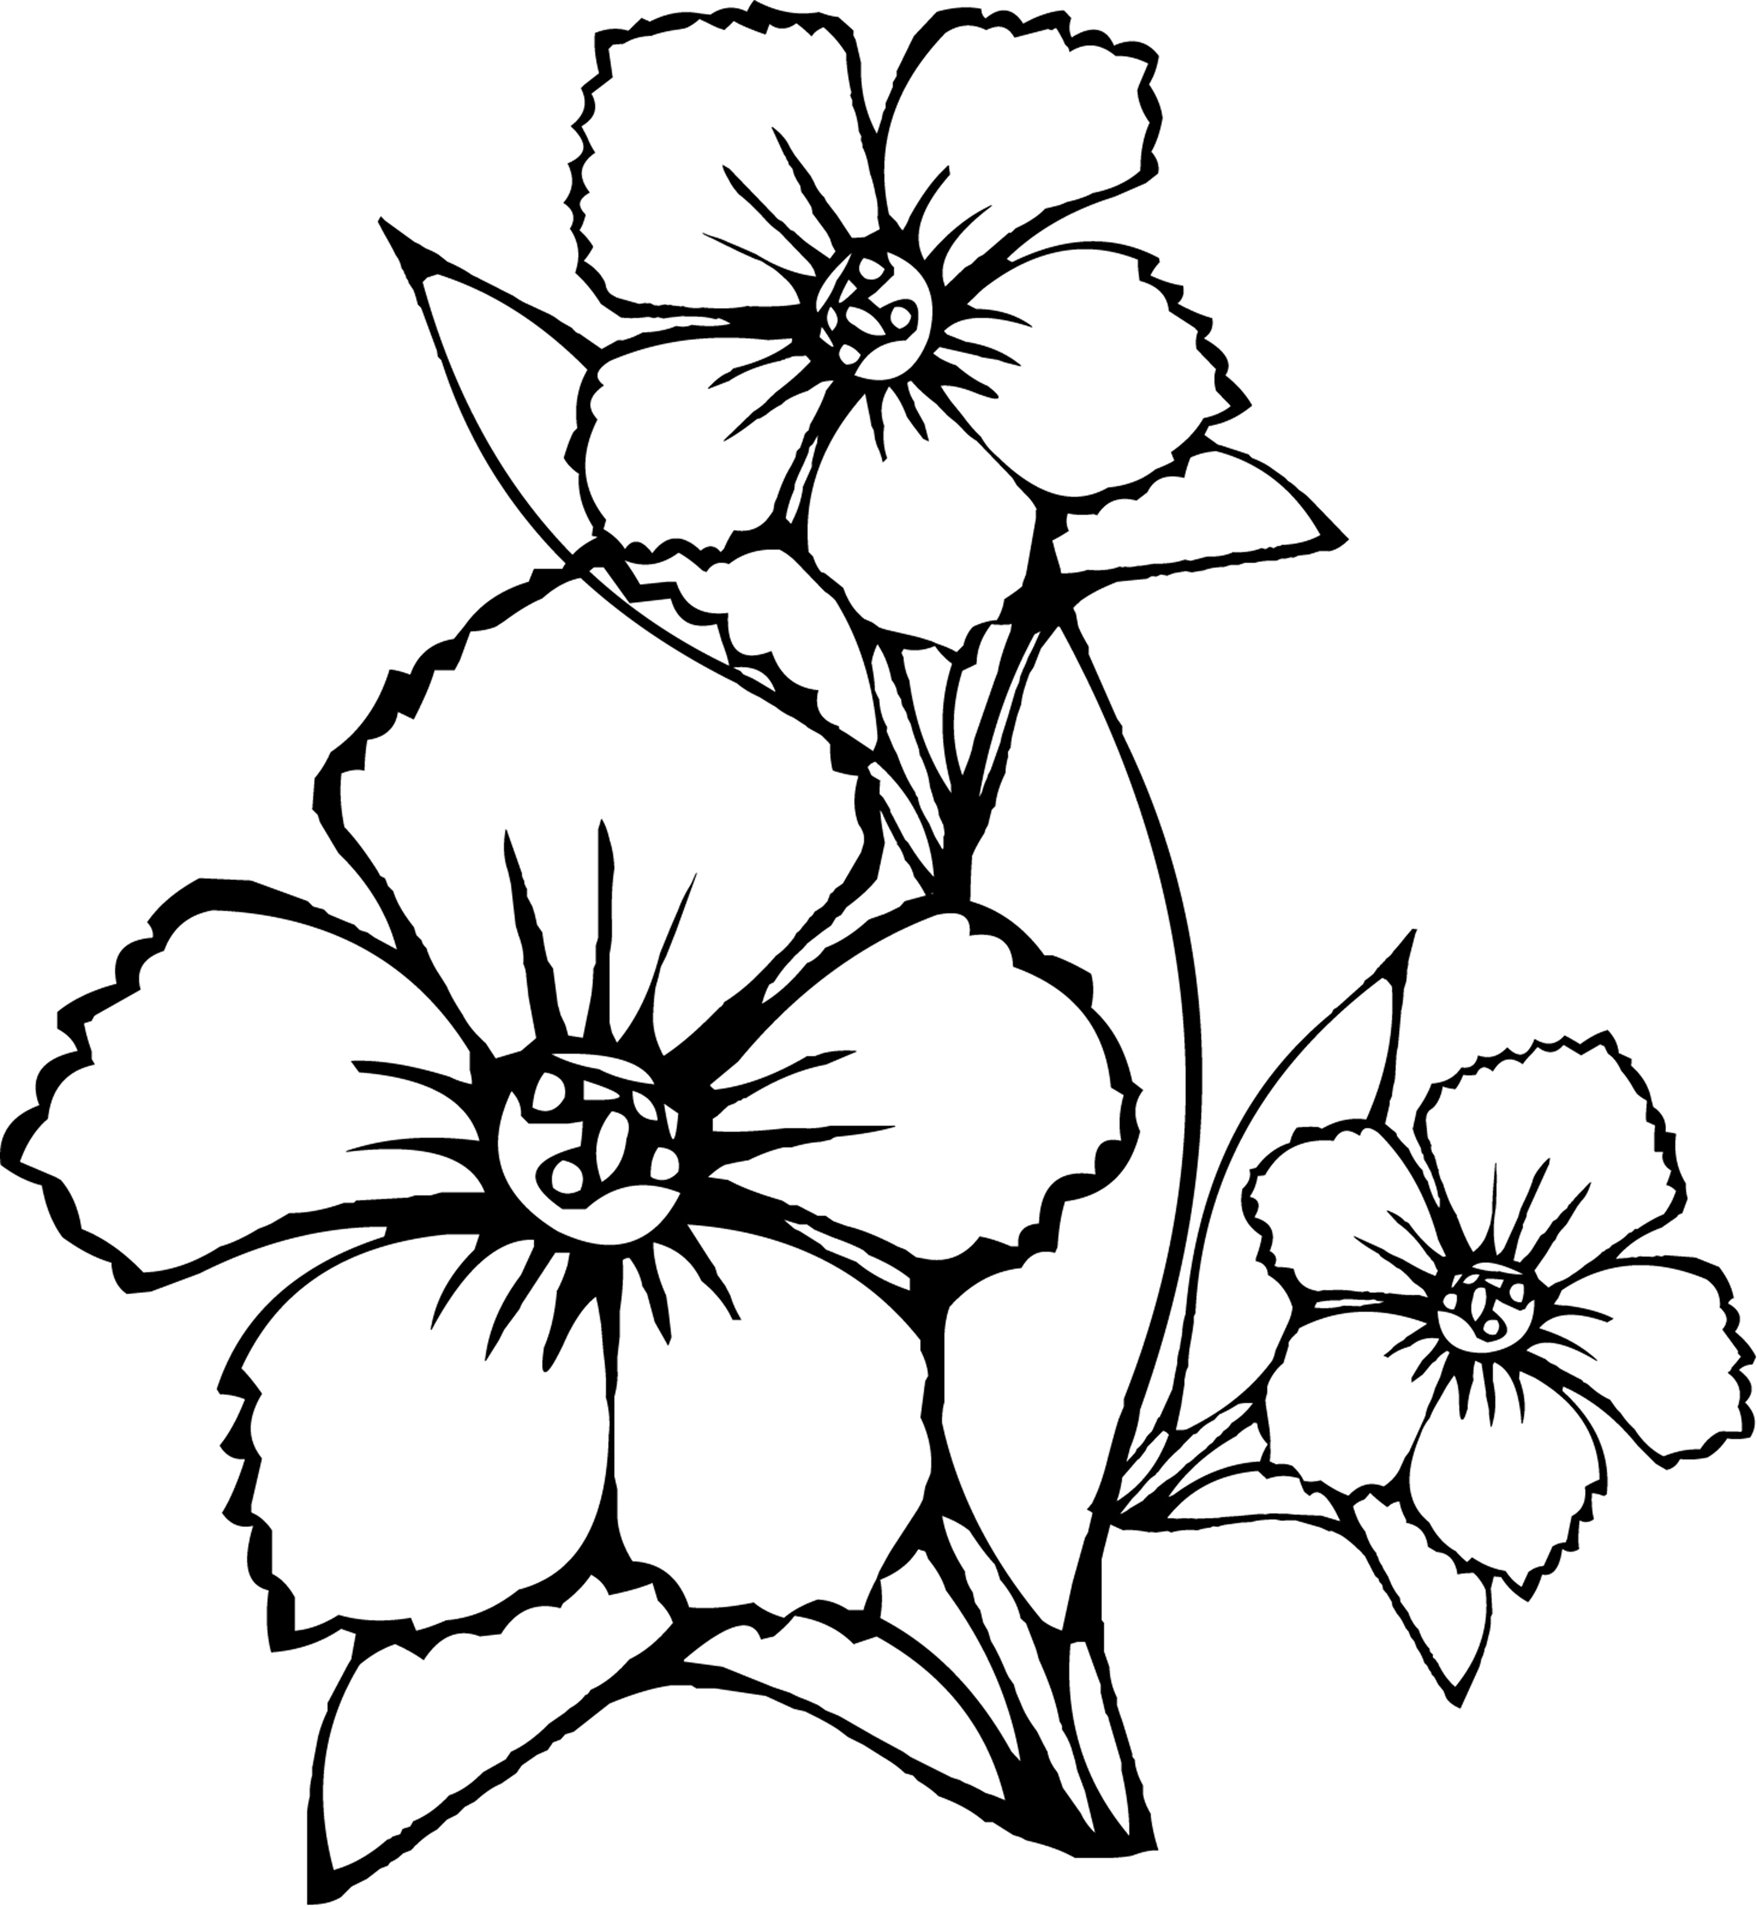 flower coloring sheets free free printable flower coloring pages for kids best coloring flower sheets free